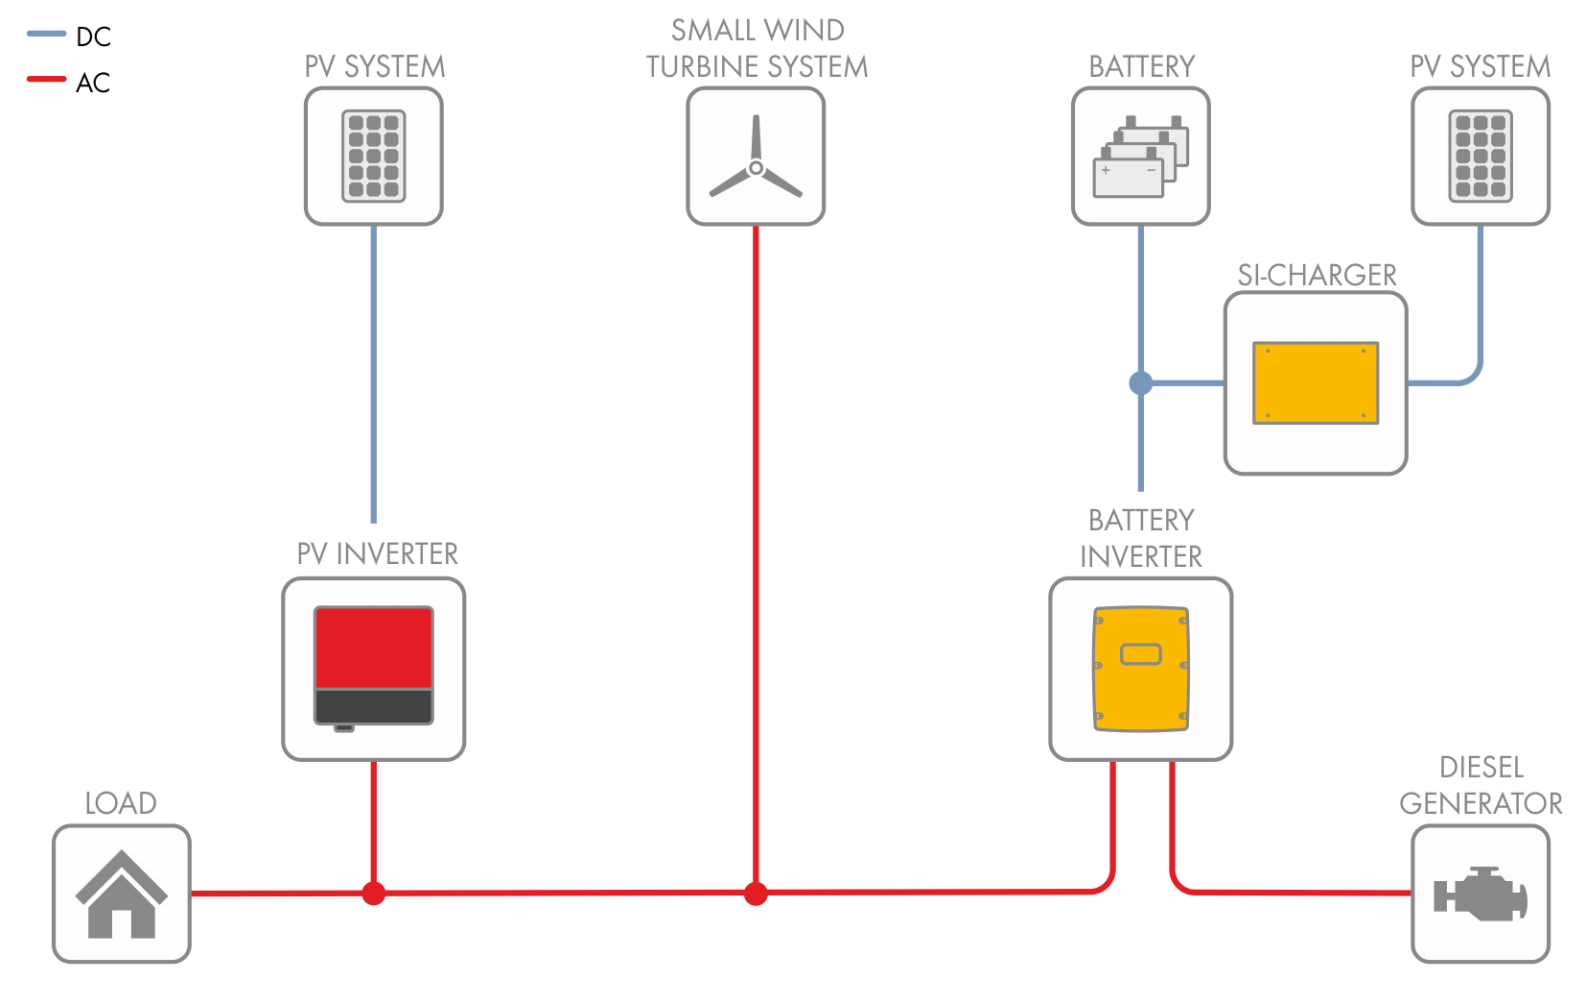 SMA Off Grid Single Phase battery storage in perth, western australia sunny boy inverter wiring diagram at bayanpartner.co